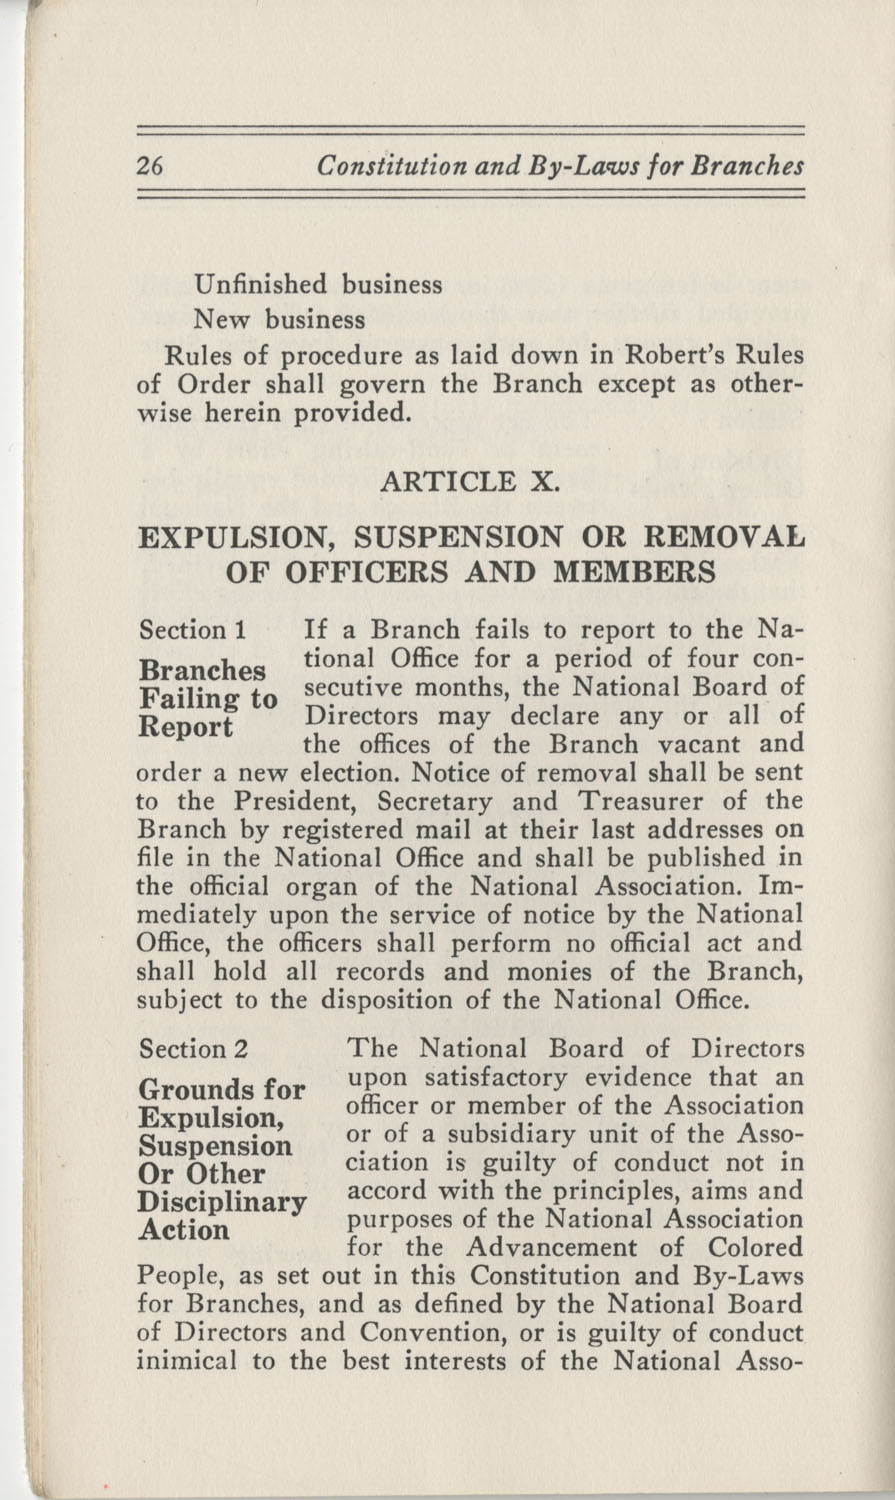 Constitutions and By-Laws, September 1960, Page 26